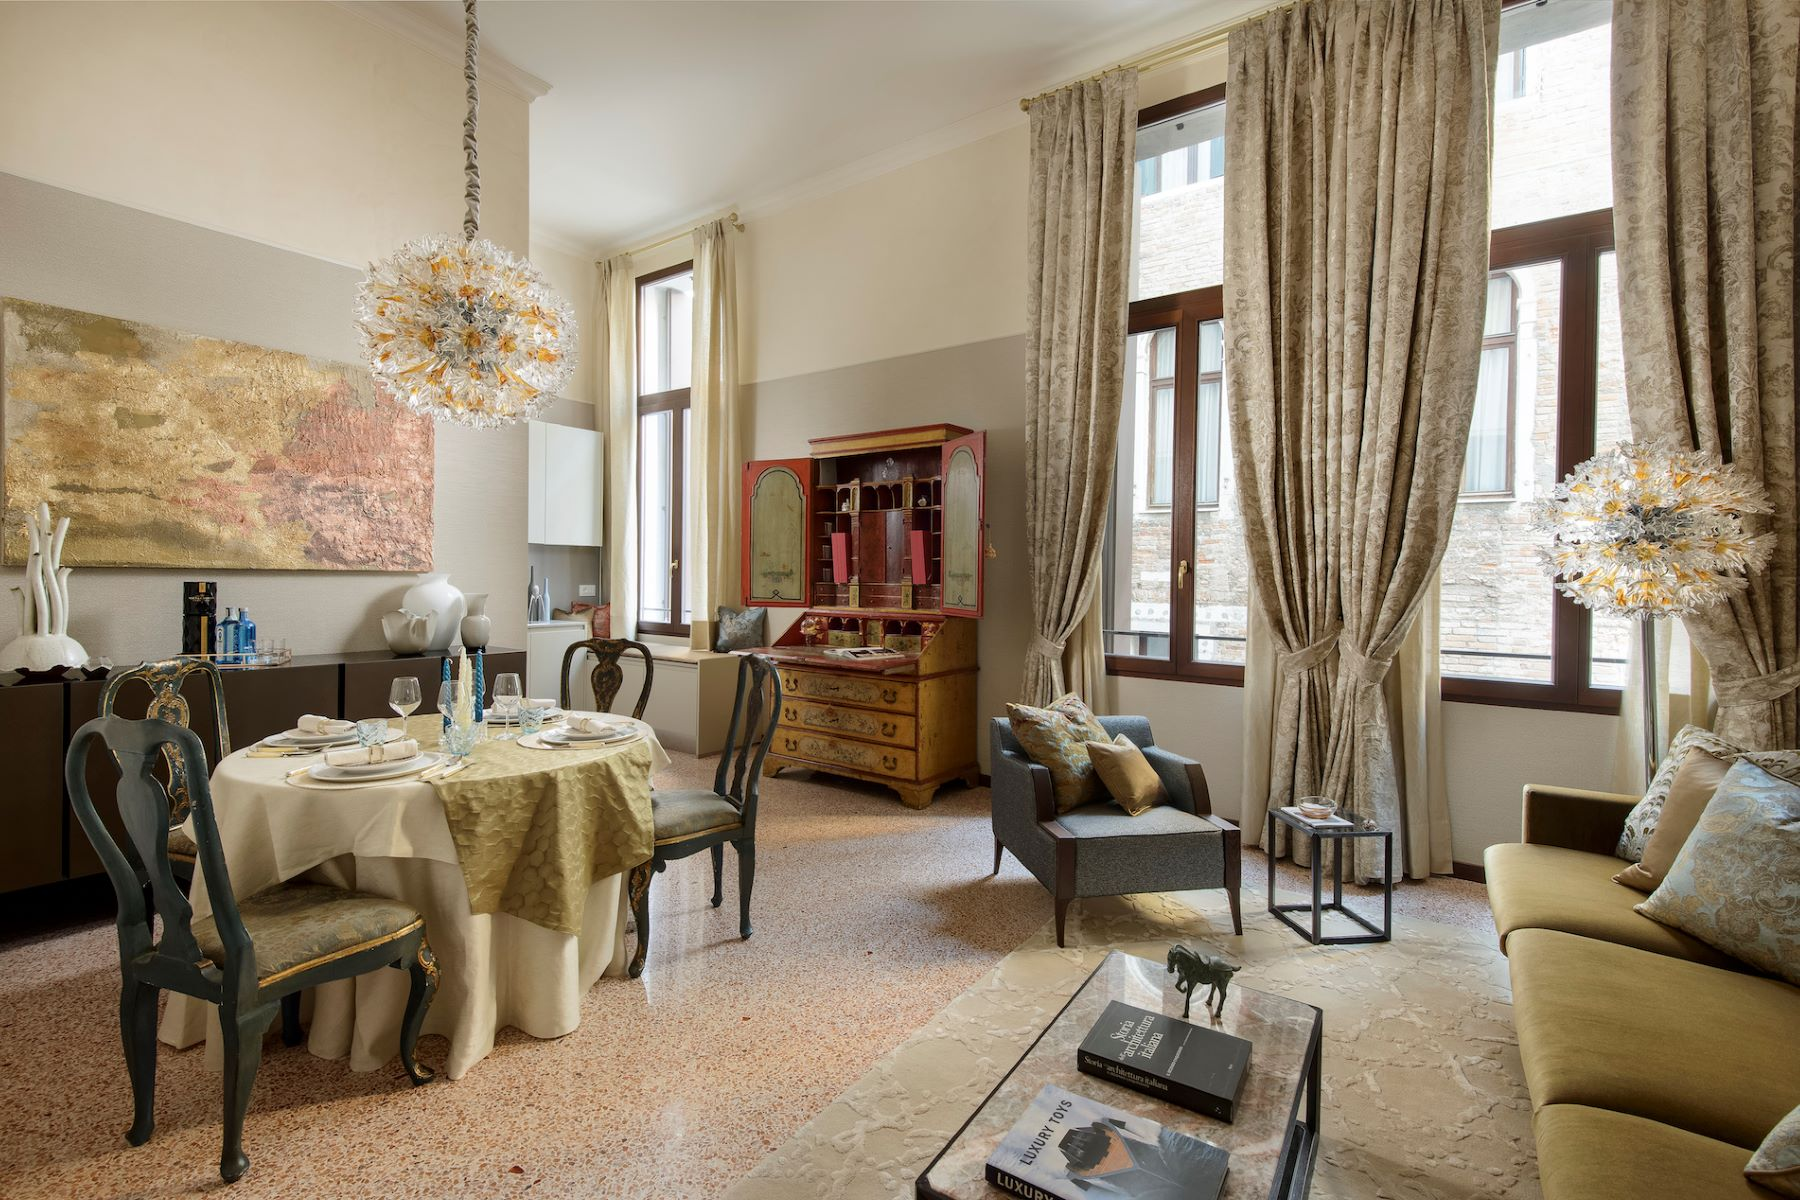 Single Family Home for Sale at Vignole apartment at Palazzo Moro Venice Venice, Venice, Venice, 30124 Italy